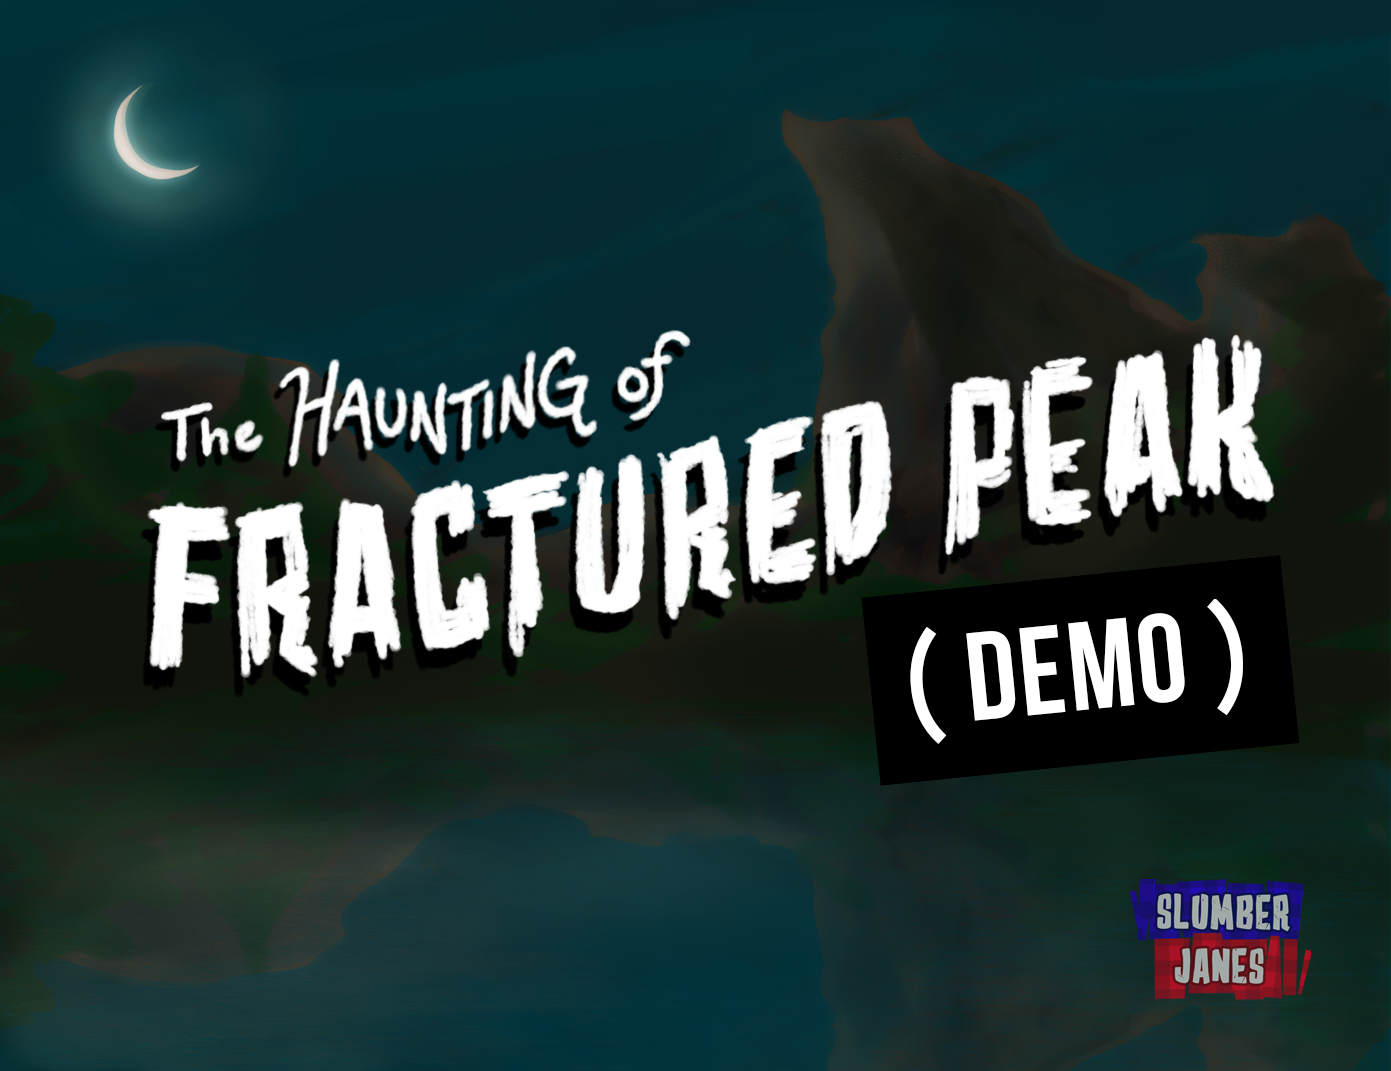 The Haunting of Fractured Peak (demo)